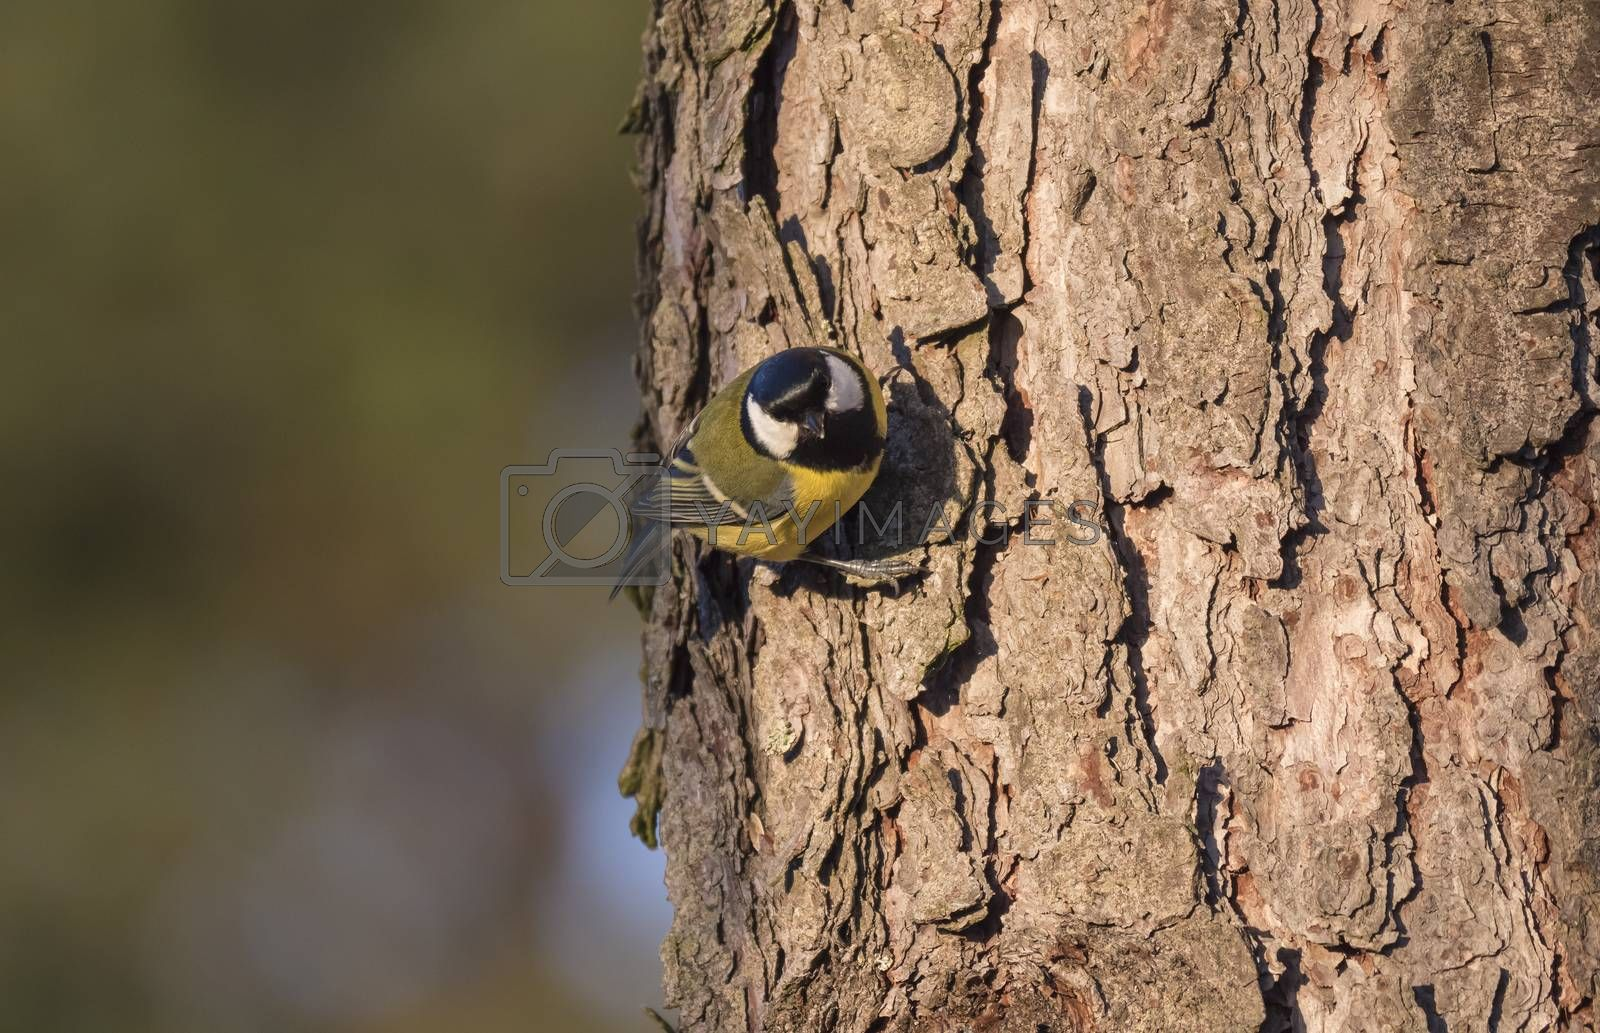 Close up Great tit, Parus major bird looking from larch tree trunk with head down. Green bokeh background, copy space